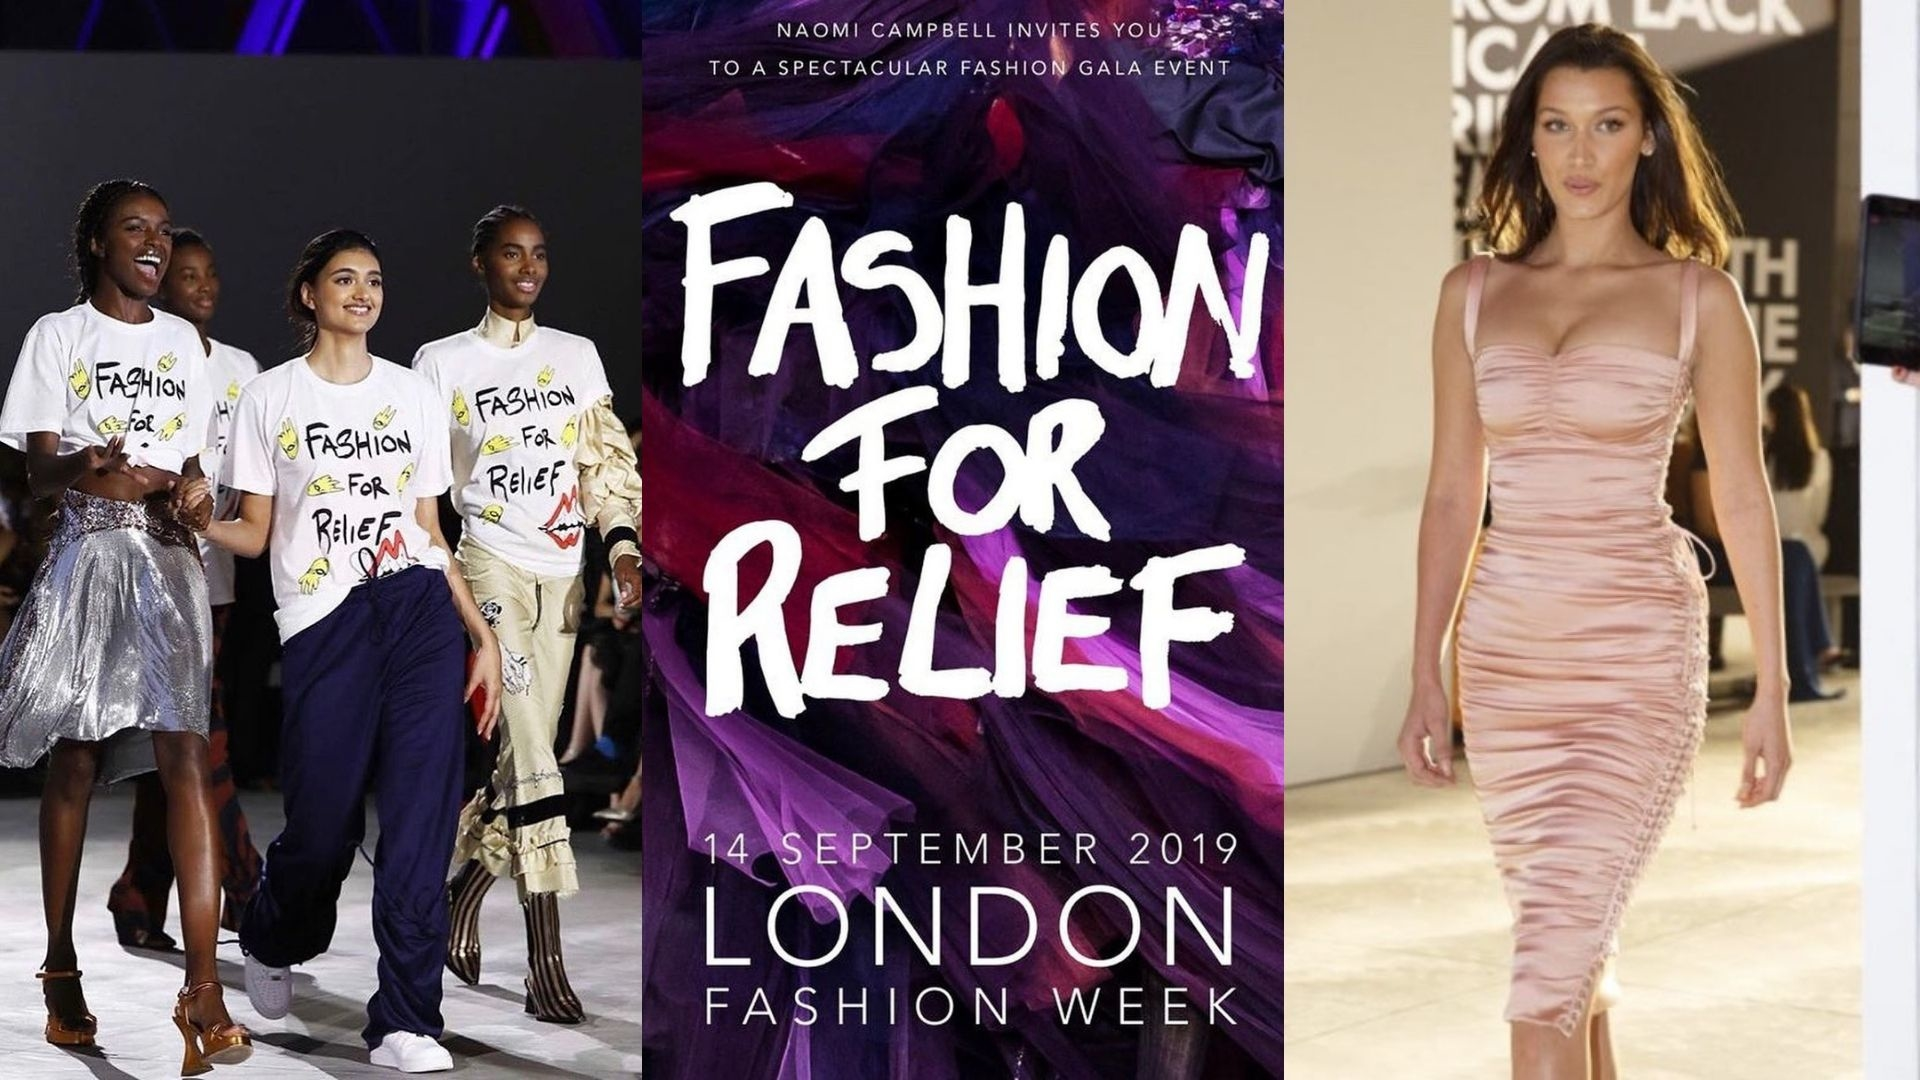 What Is Fashion For Relief And Why Does It Matter?